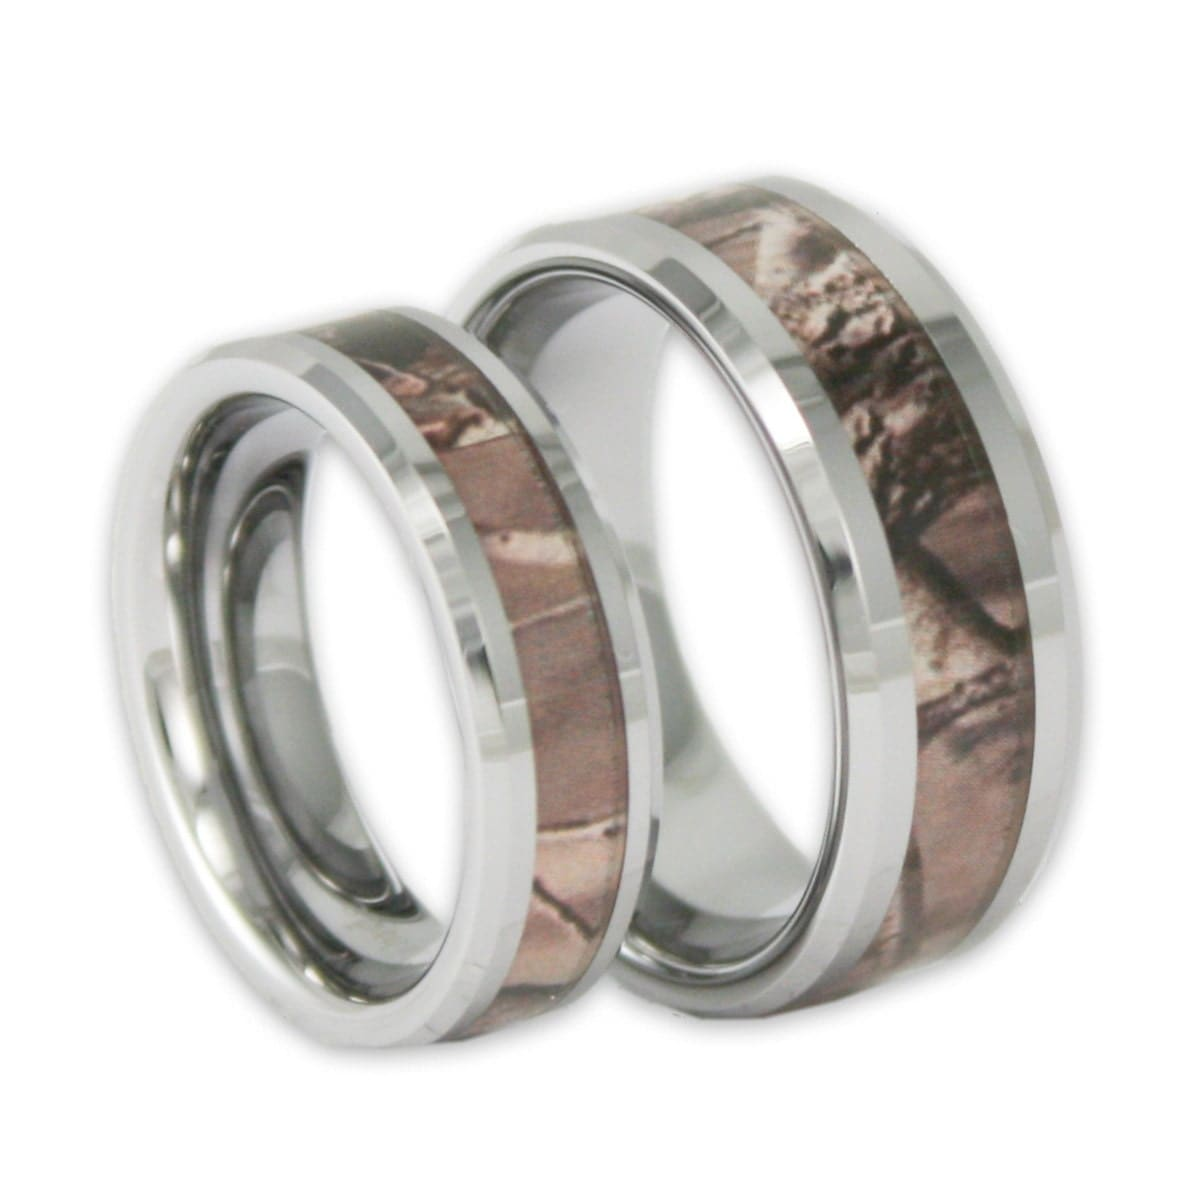 zoom - Camo Wedding Ring Set